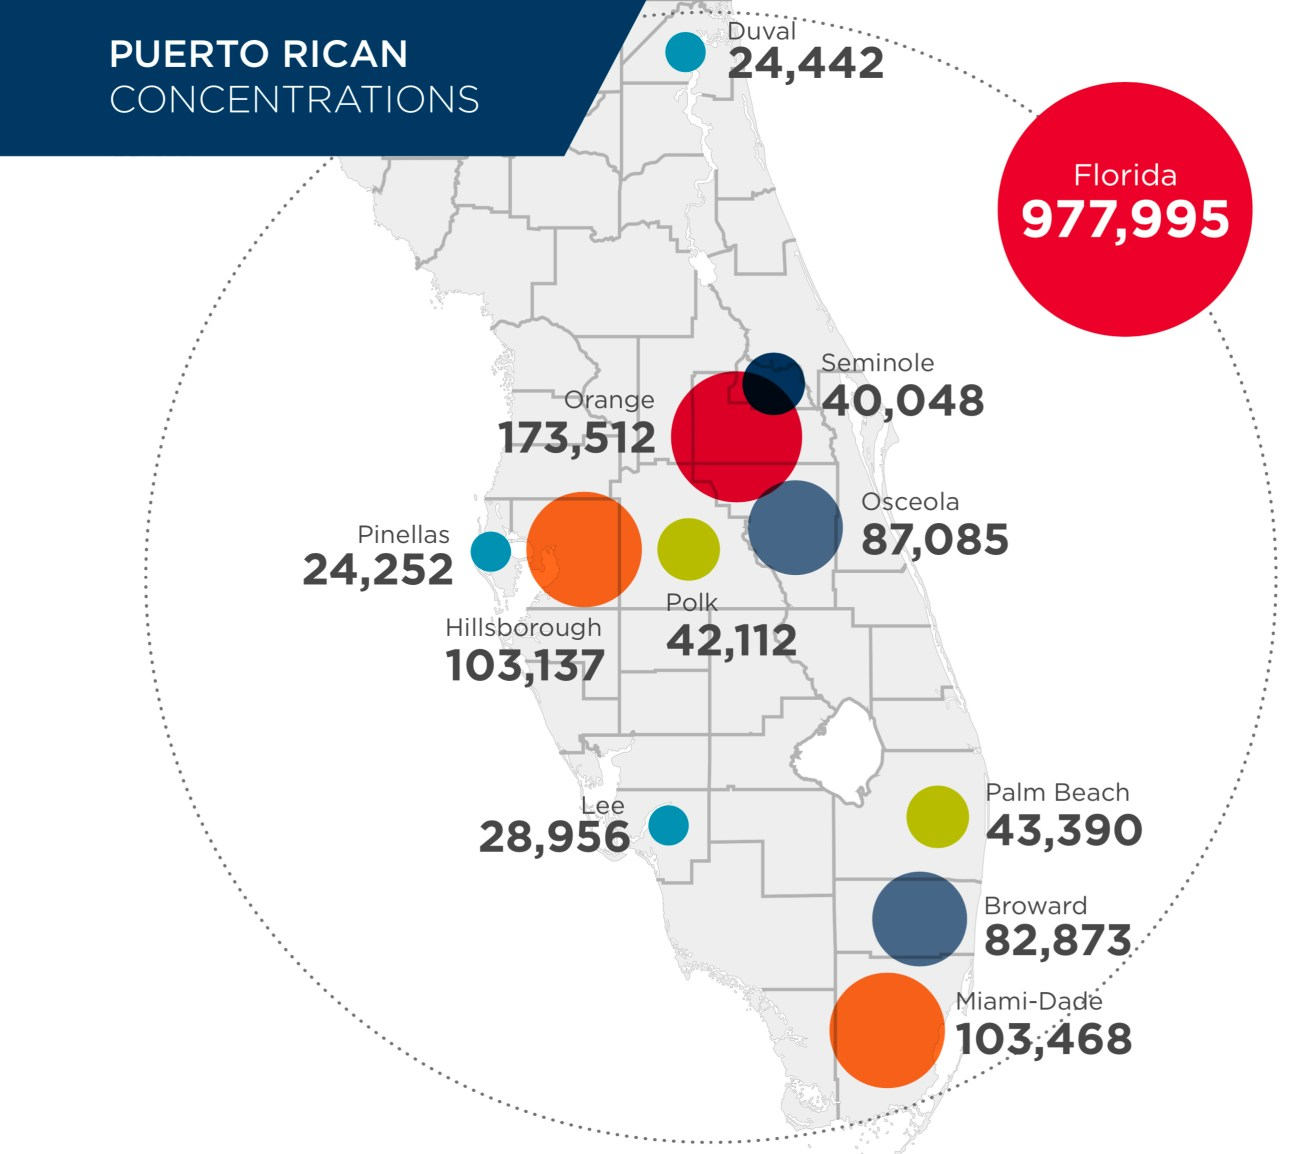 Puerto Rican Diaspora: Migration Flows to Florida and Economic Effects